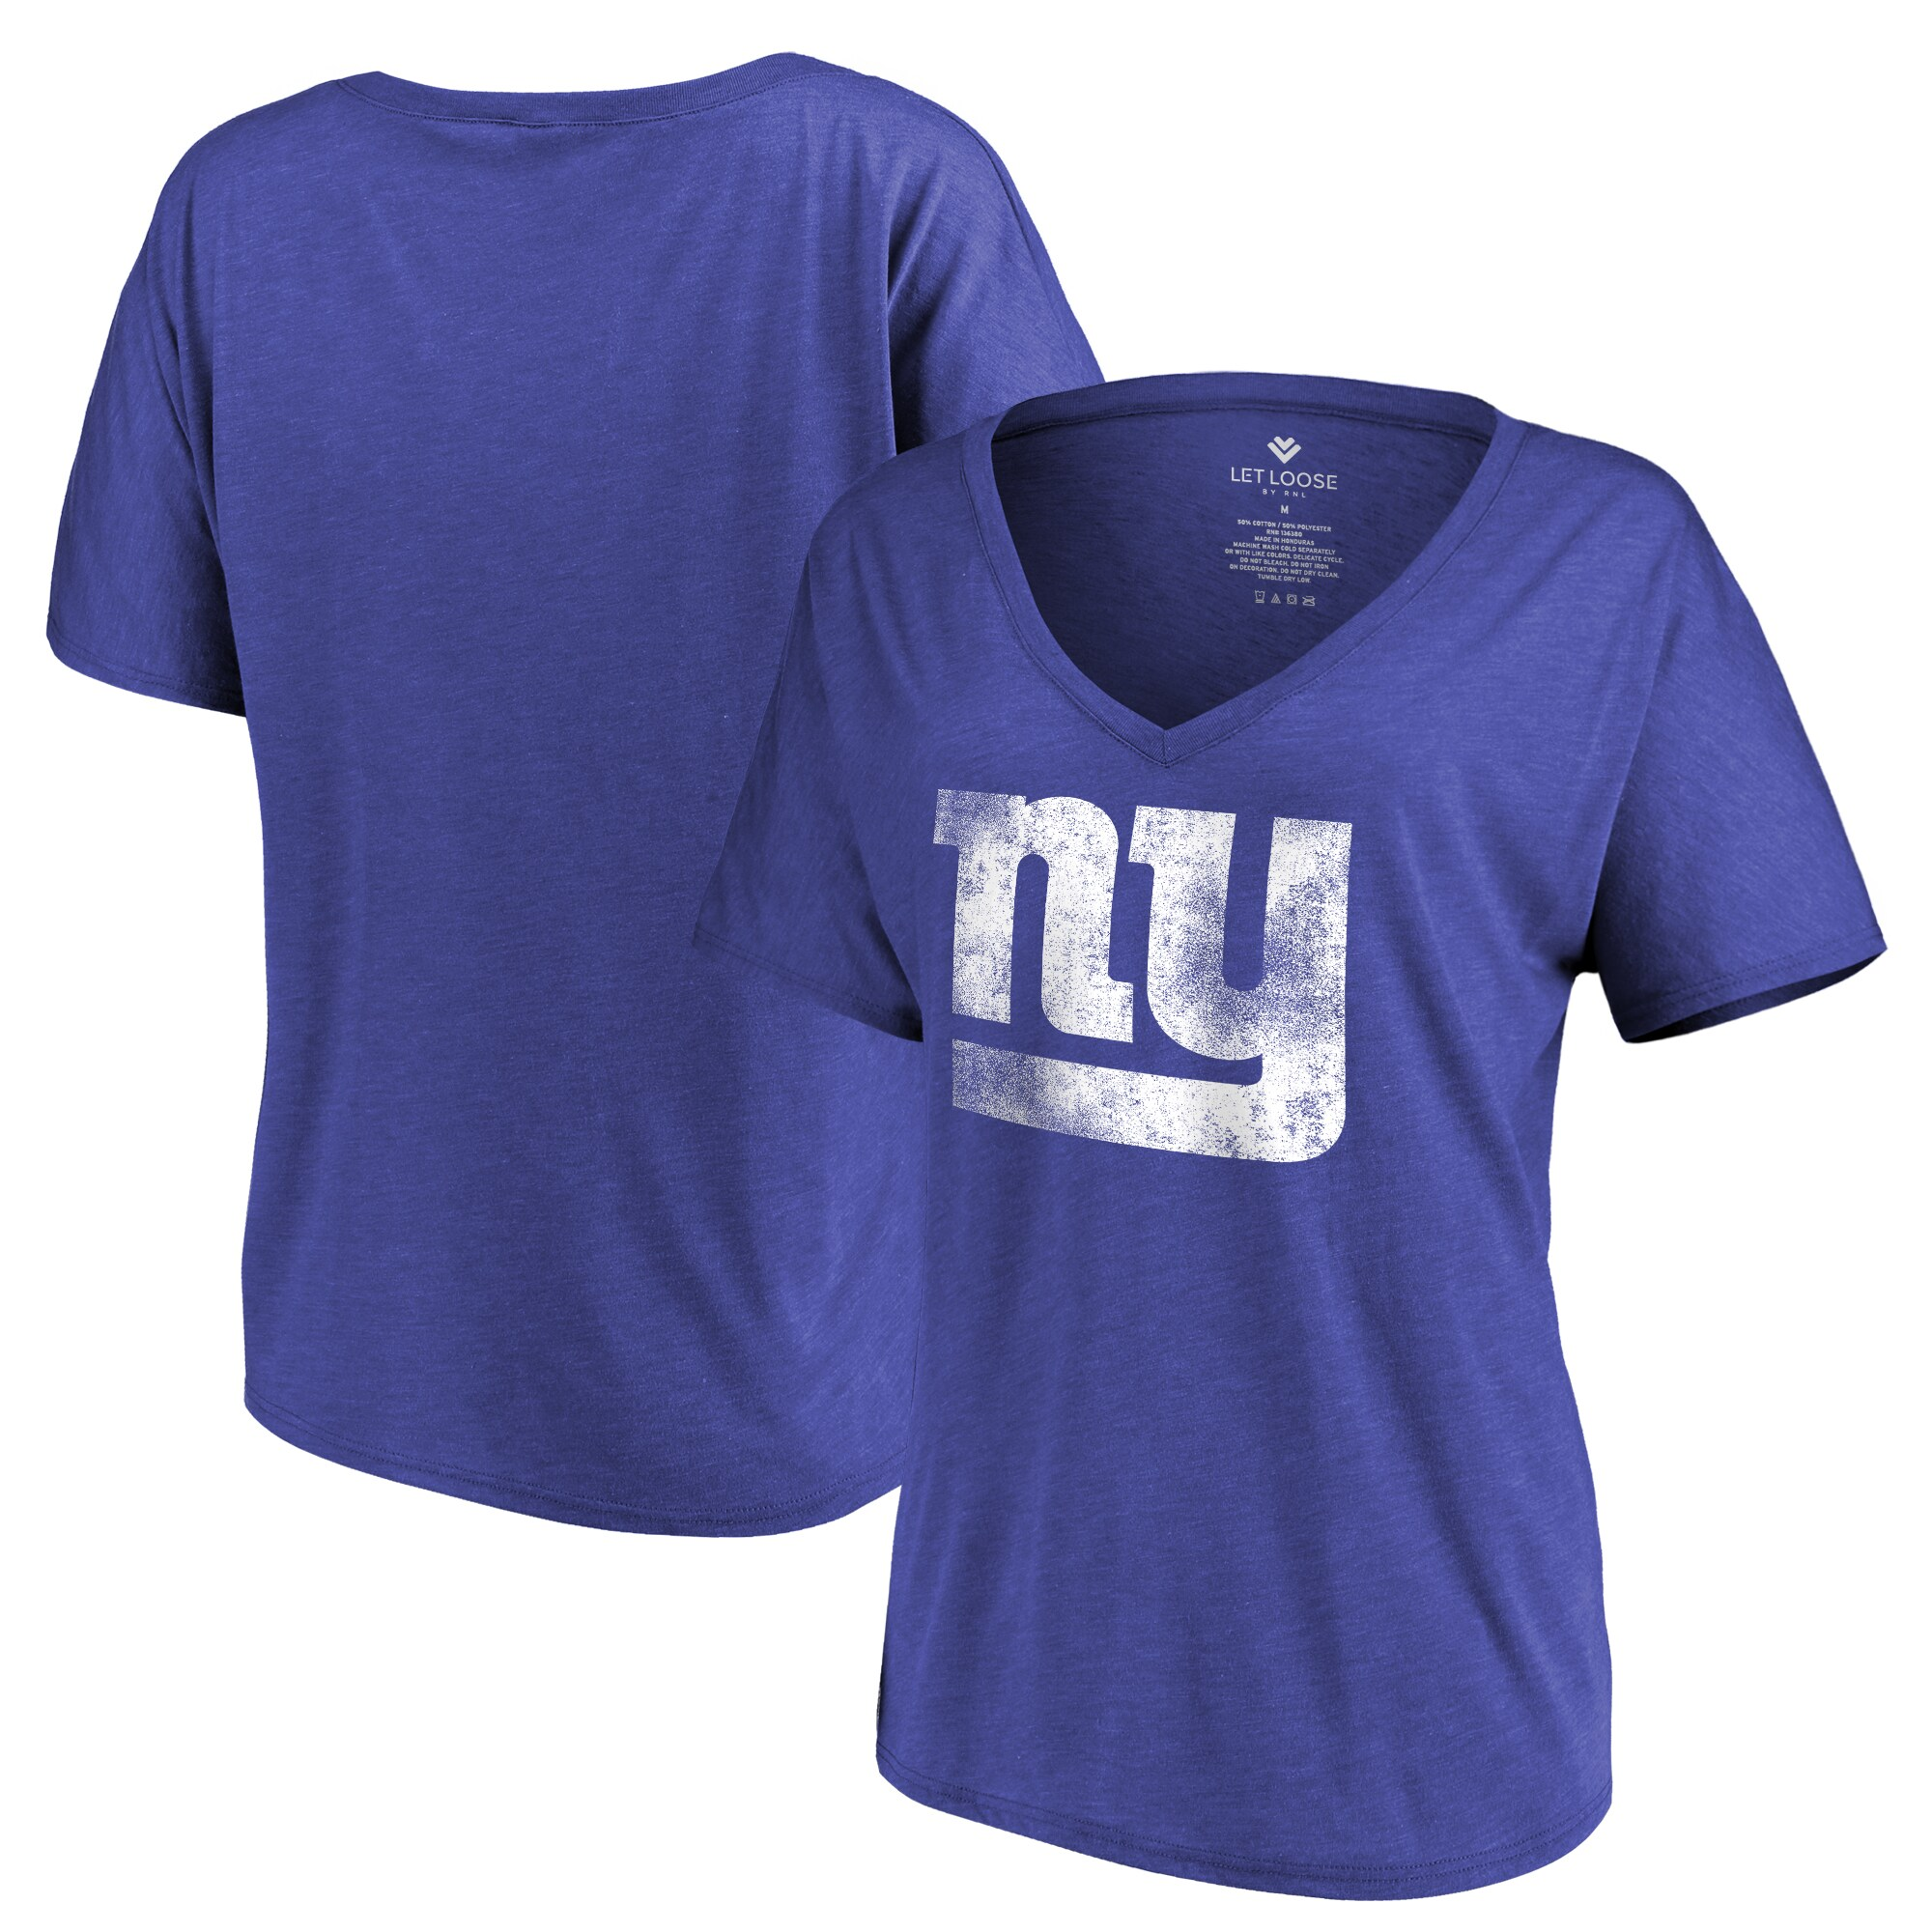 New York Giants Let Loose by RNL Women's Distressed Primary V-Neck T-Shirt - Royal